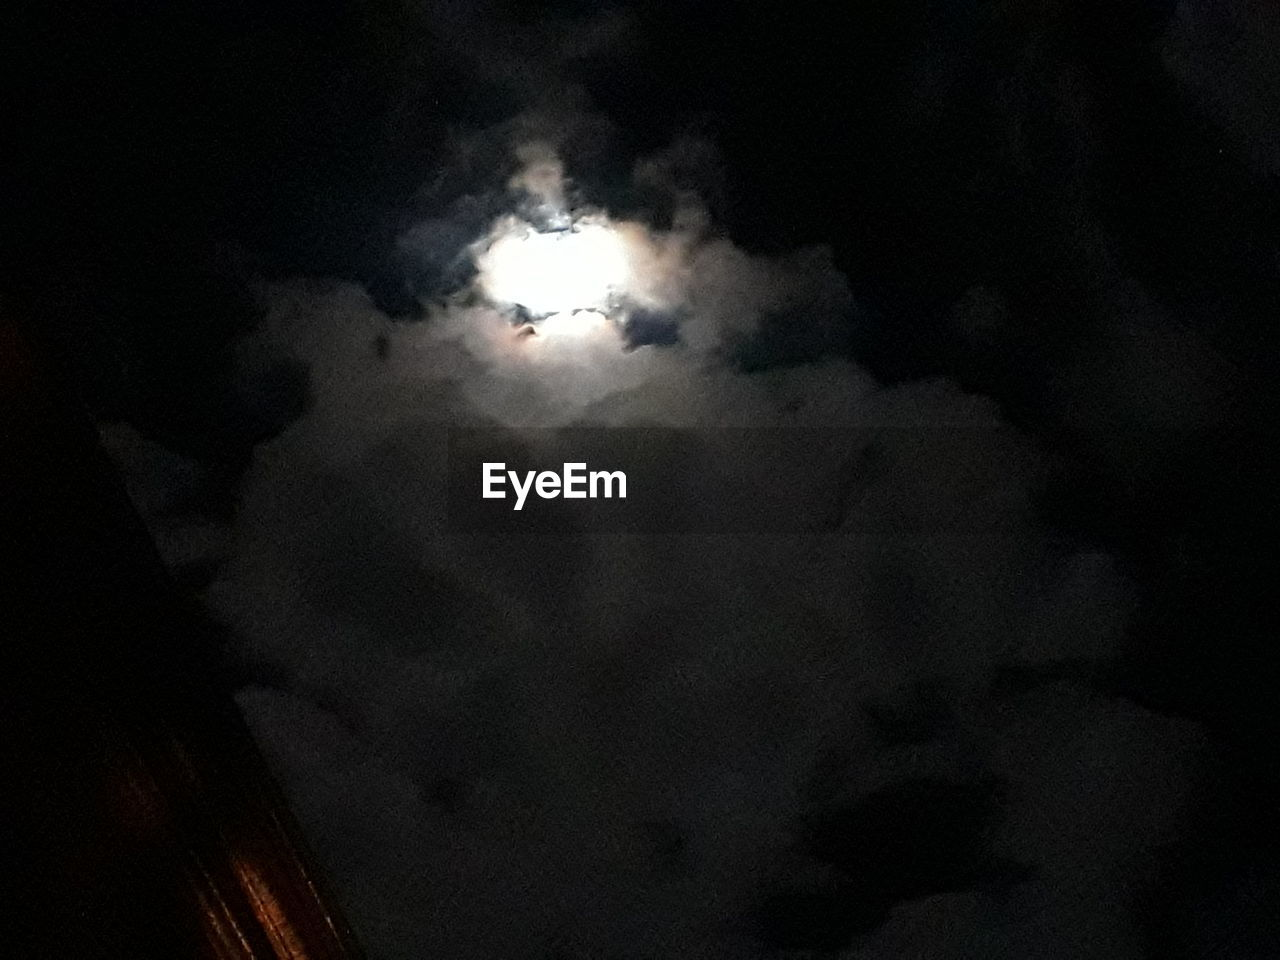 cloud - sky, sky, night, low angle view, no people, beauty in nature, scenics - nature, moon, nature, tranquility, outdoors, dark, tranquil scene, moonlight, cloudscape, dramatic sky, overcast, space, majestic, ominous